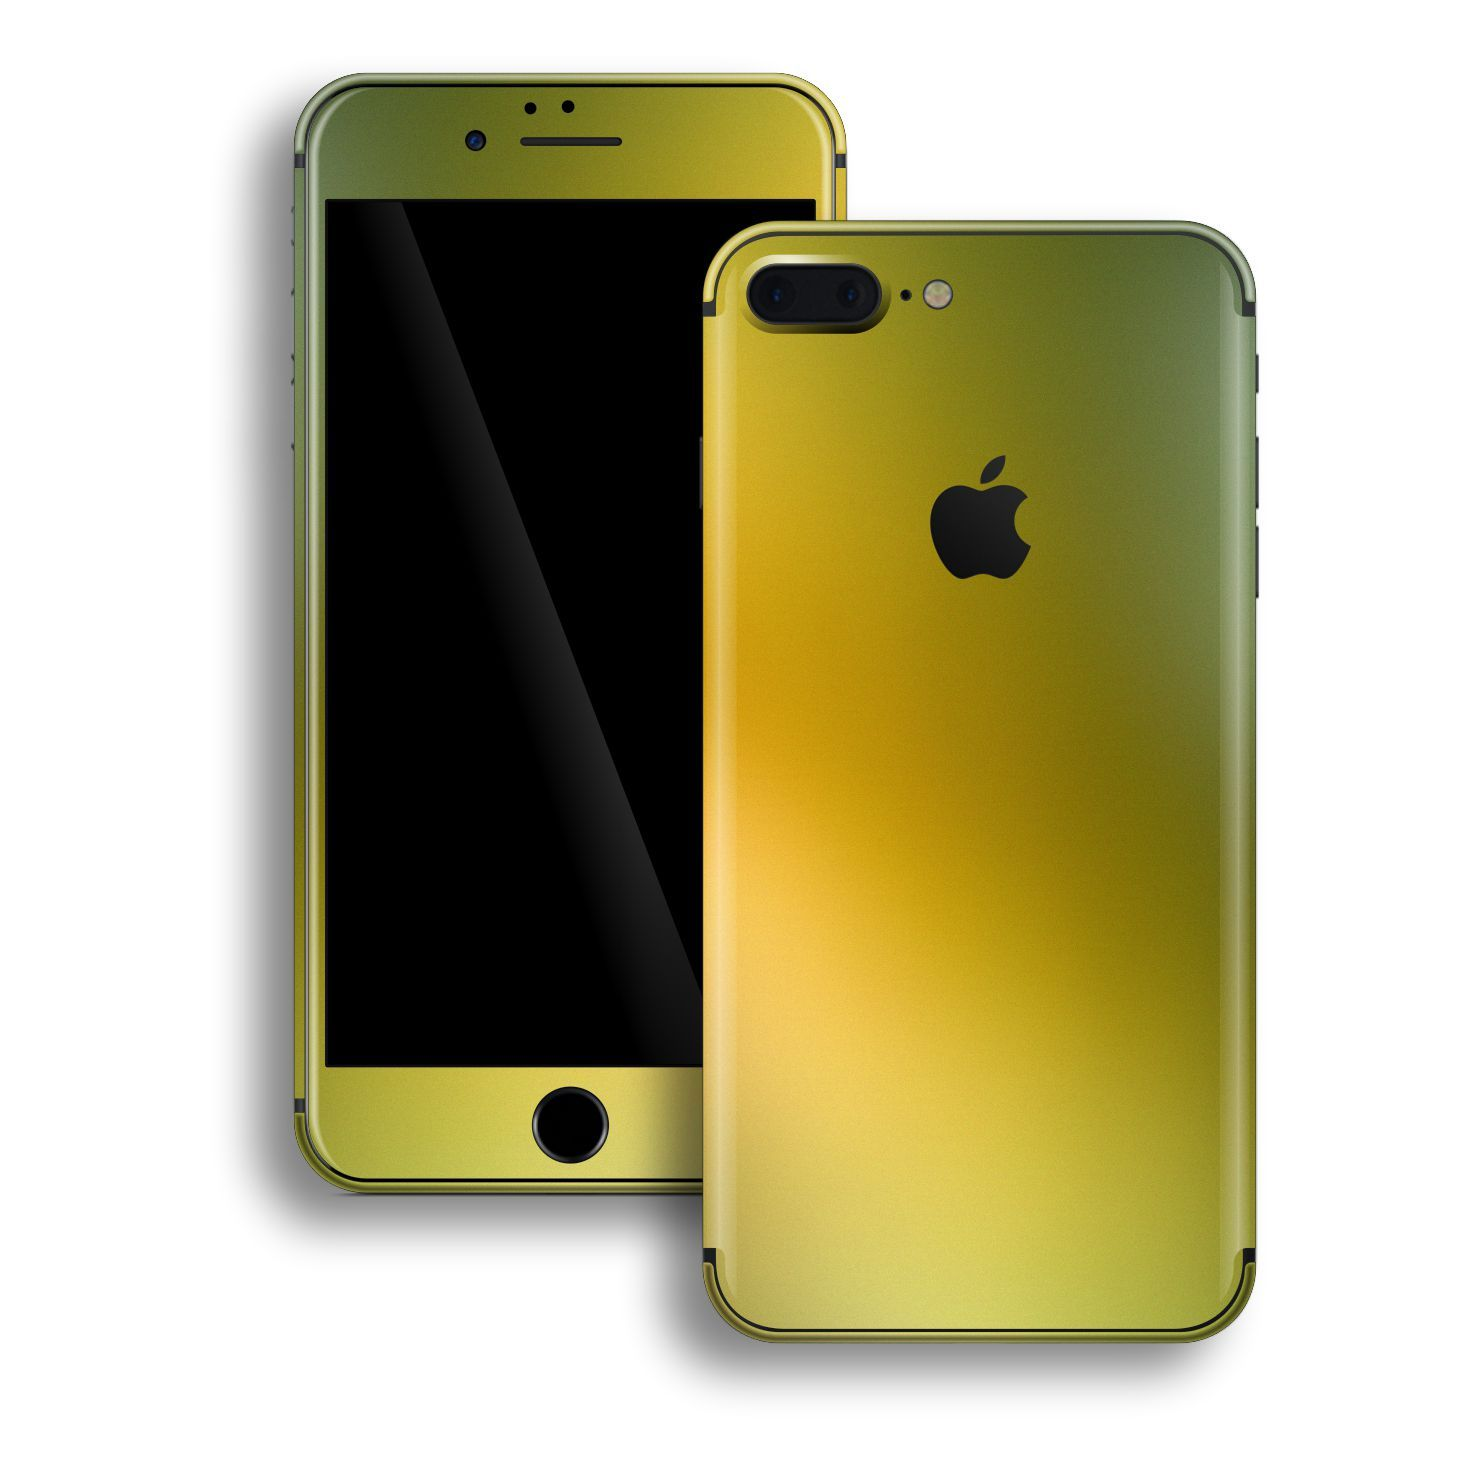 iPhone 8 Plus Chameleon NEPHRITE-GOLD Colour-Changing Skin, Decal, Wrap, Protector, Cover by EasySkinz | EasySkinz.com